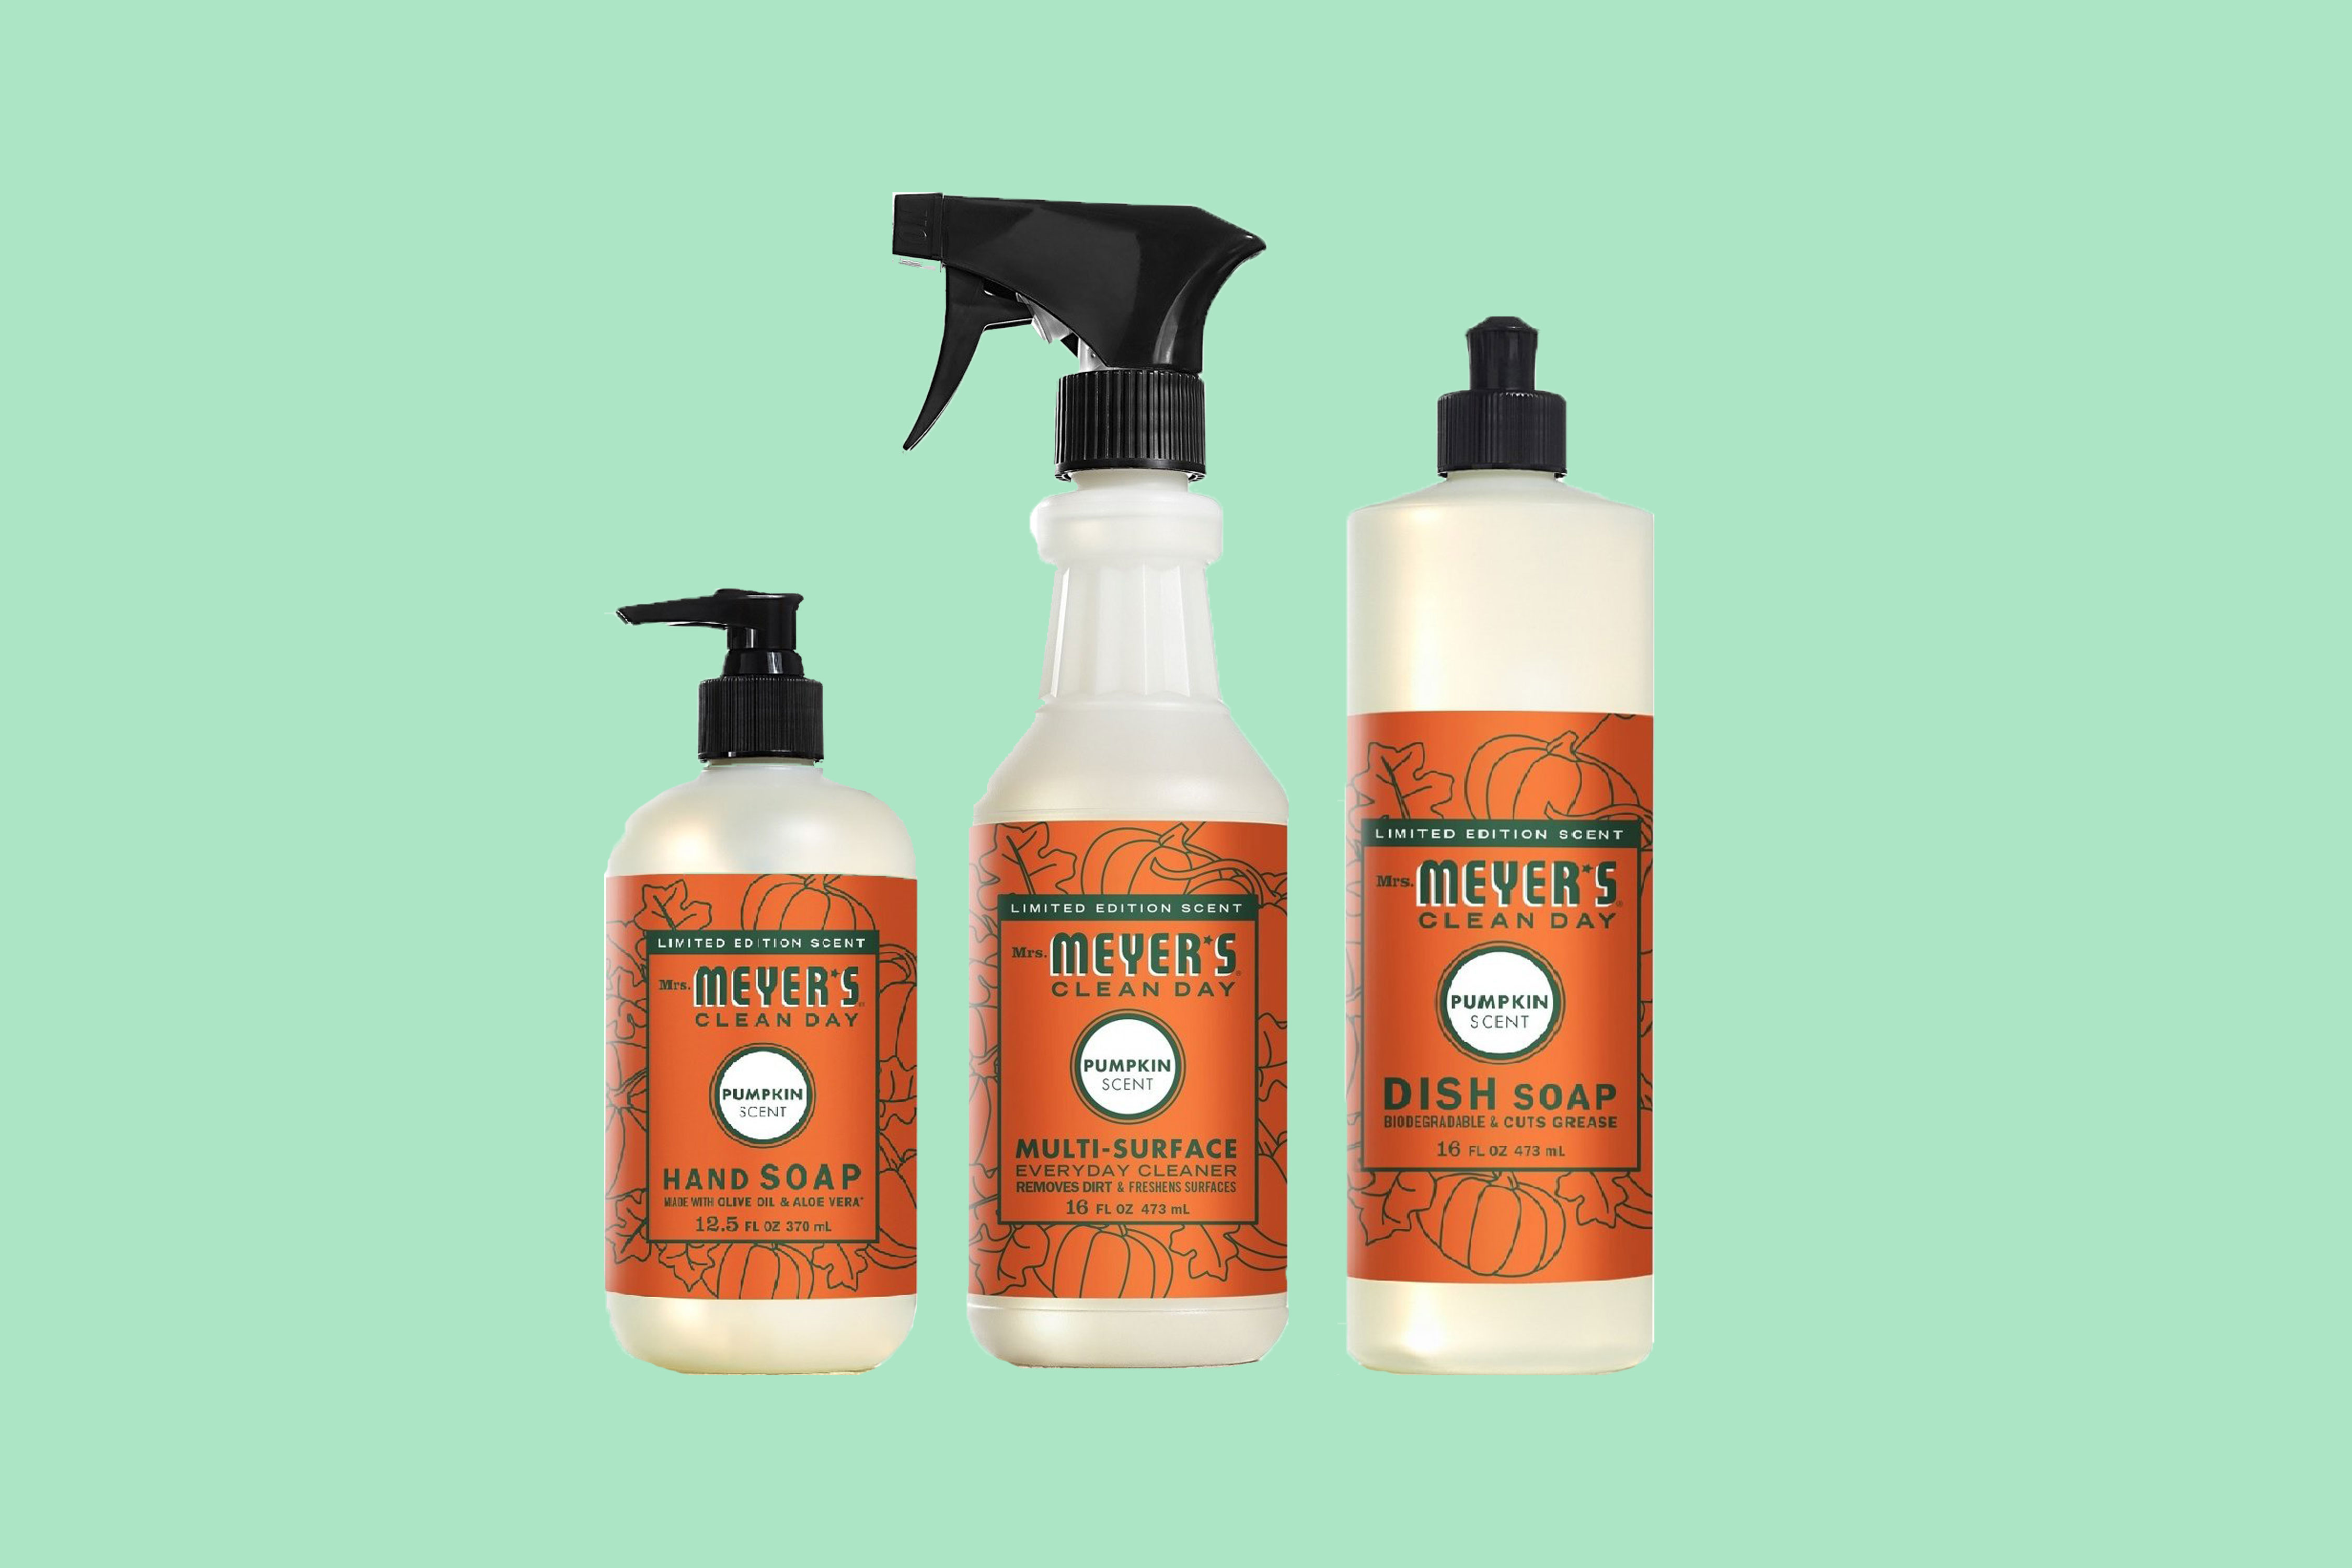 Mrs. Meyers Fall and Pumpkin Cleaning Products